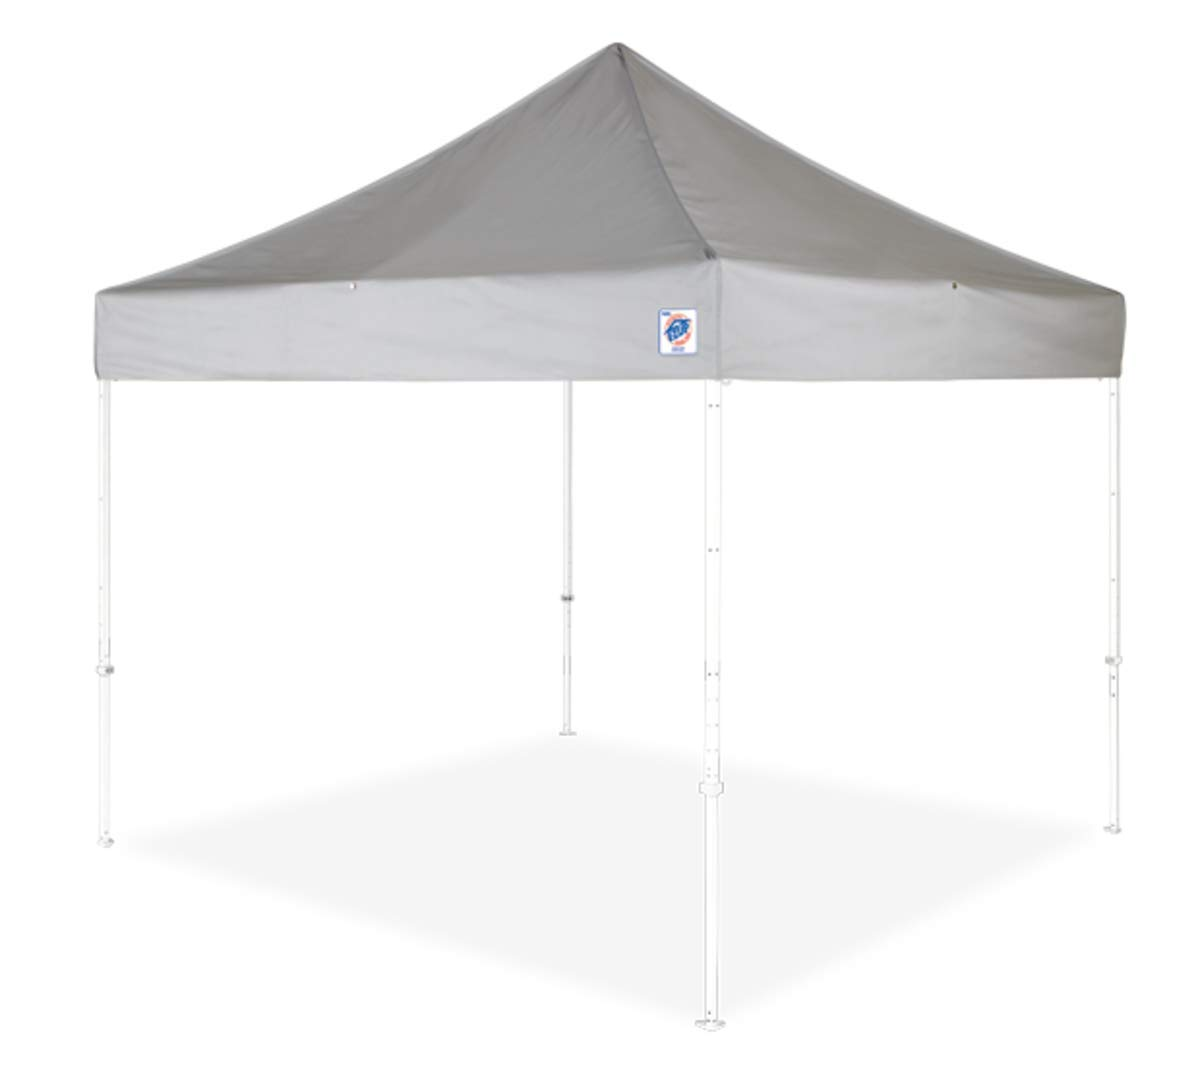 Image of Bedroom Aids & Accessories E-Z UP Eclipse Instant Shelter Canopy with Grey Top